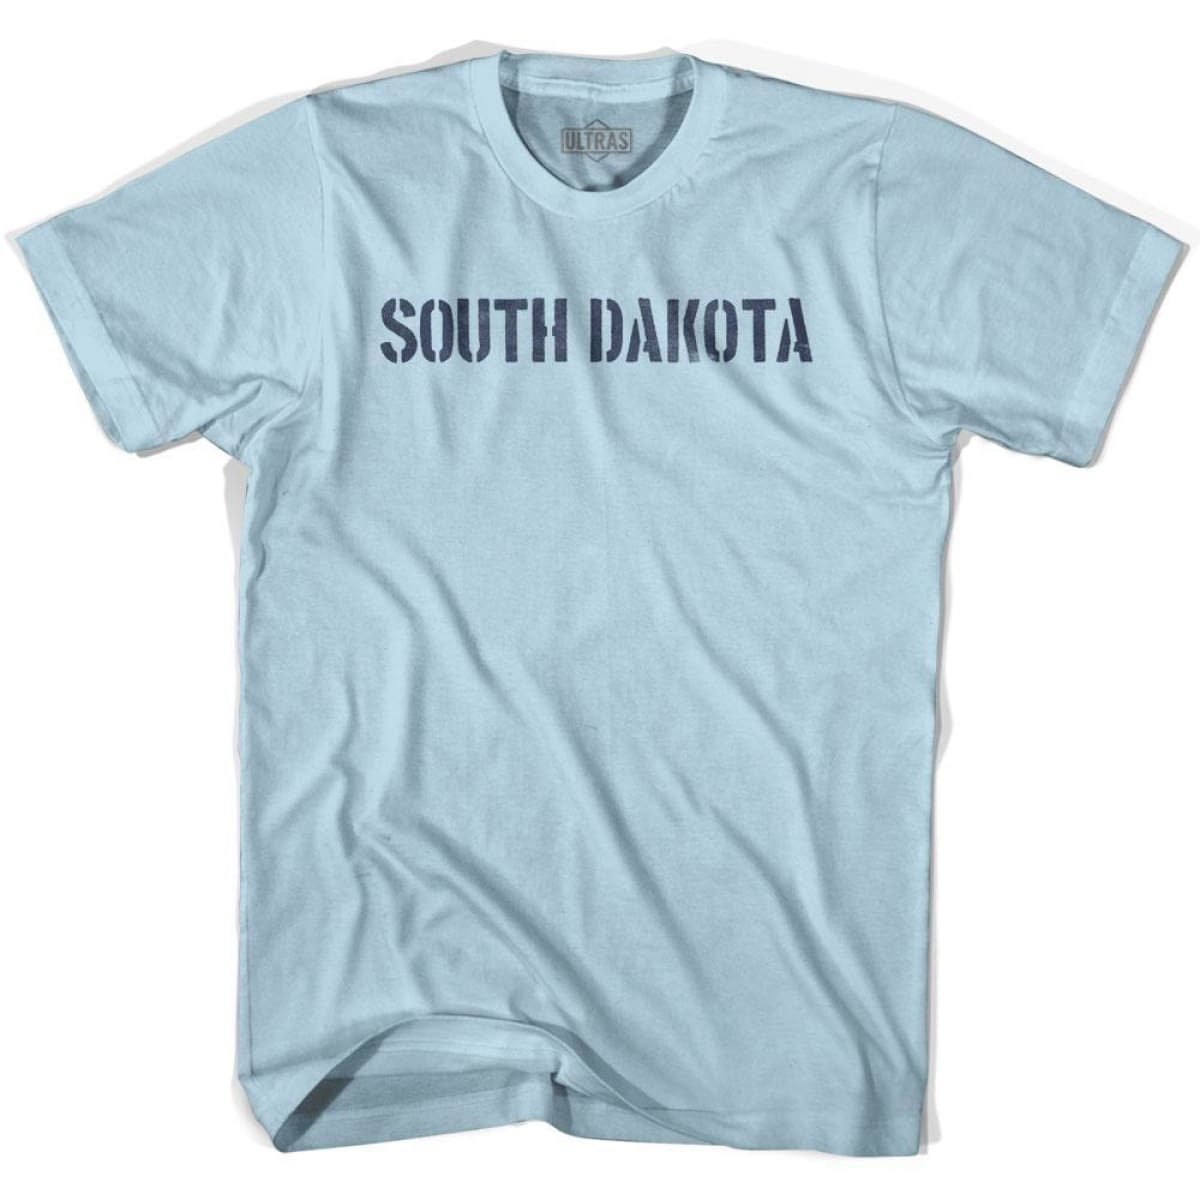 South Dakota State Stencil Adult Cotton T-shirt - Light Blue / Adult Small - Stencil State